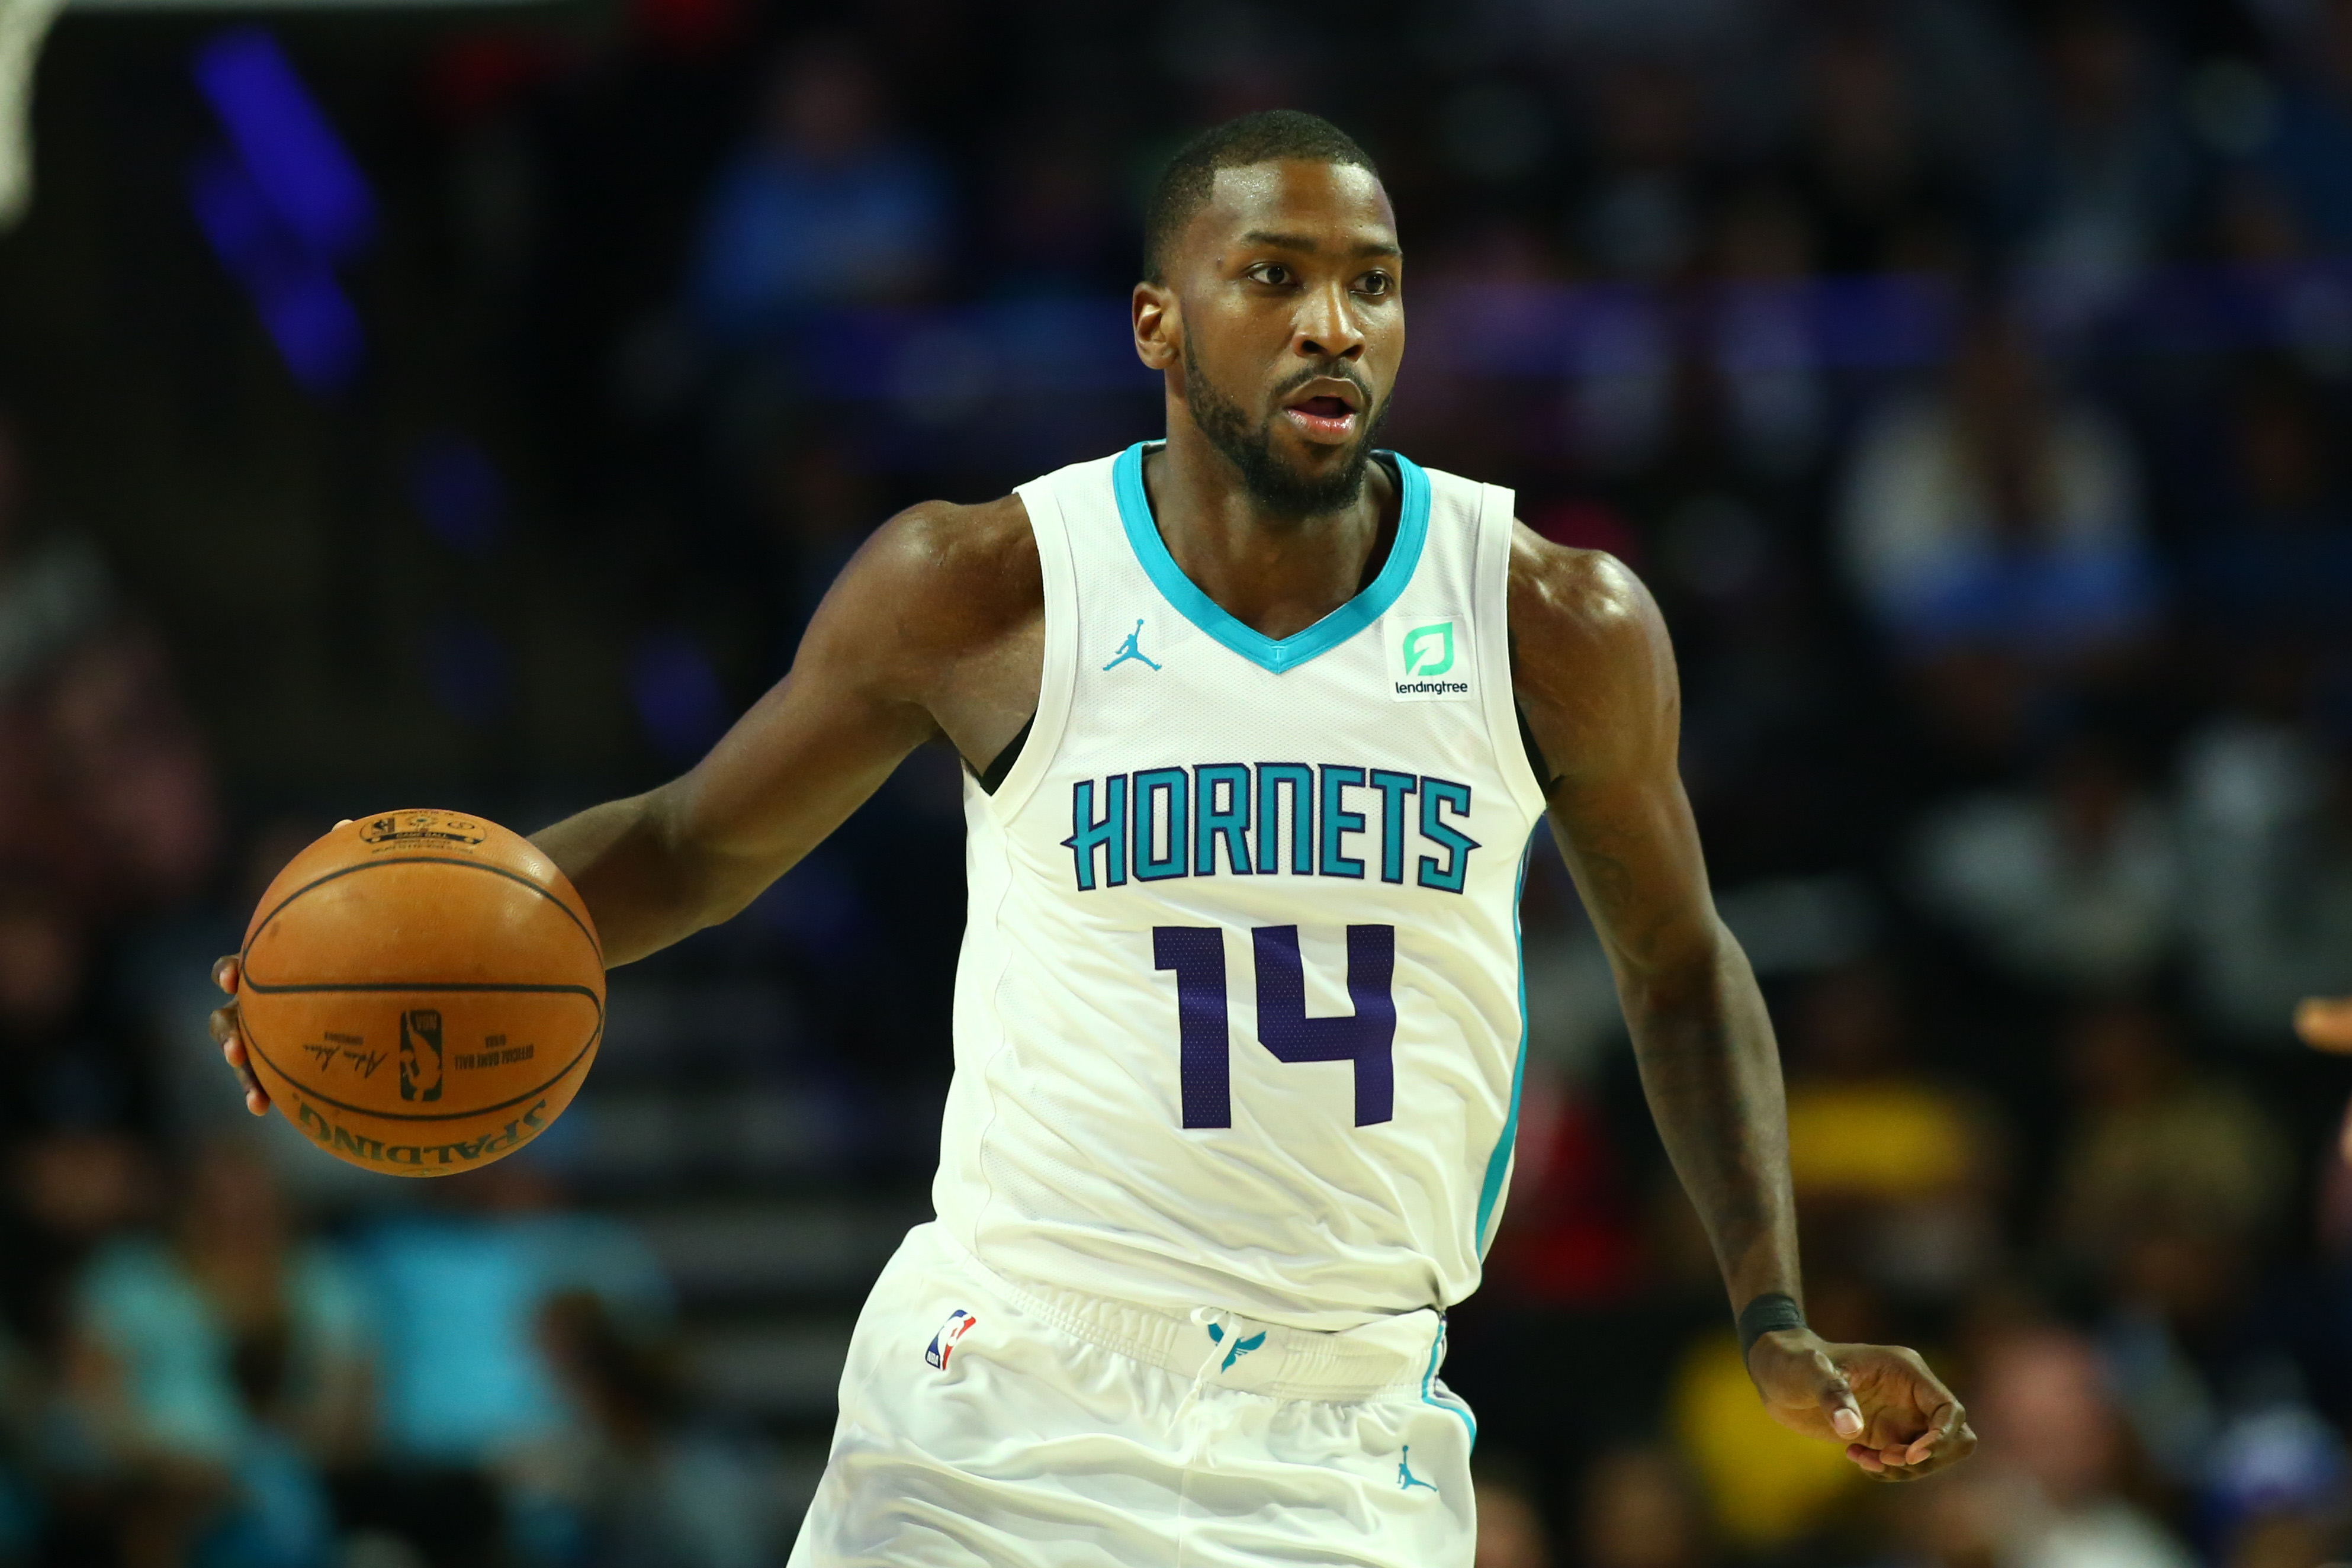 Oct 11, 2019; Winston-Salem, NC, USA; Charlotte Hornets forward Michael Kidd-Gilchrist (14) sets up a play during the game against the Philadelphia 76ers at Lawrence Joel Veterans Memorial Coliseum.